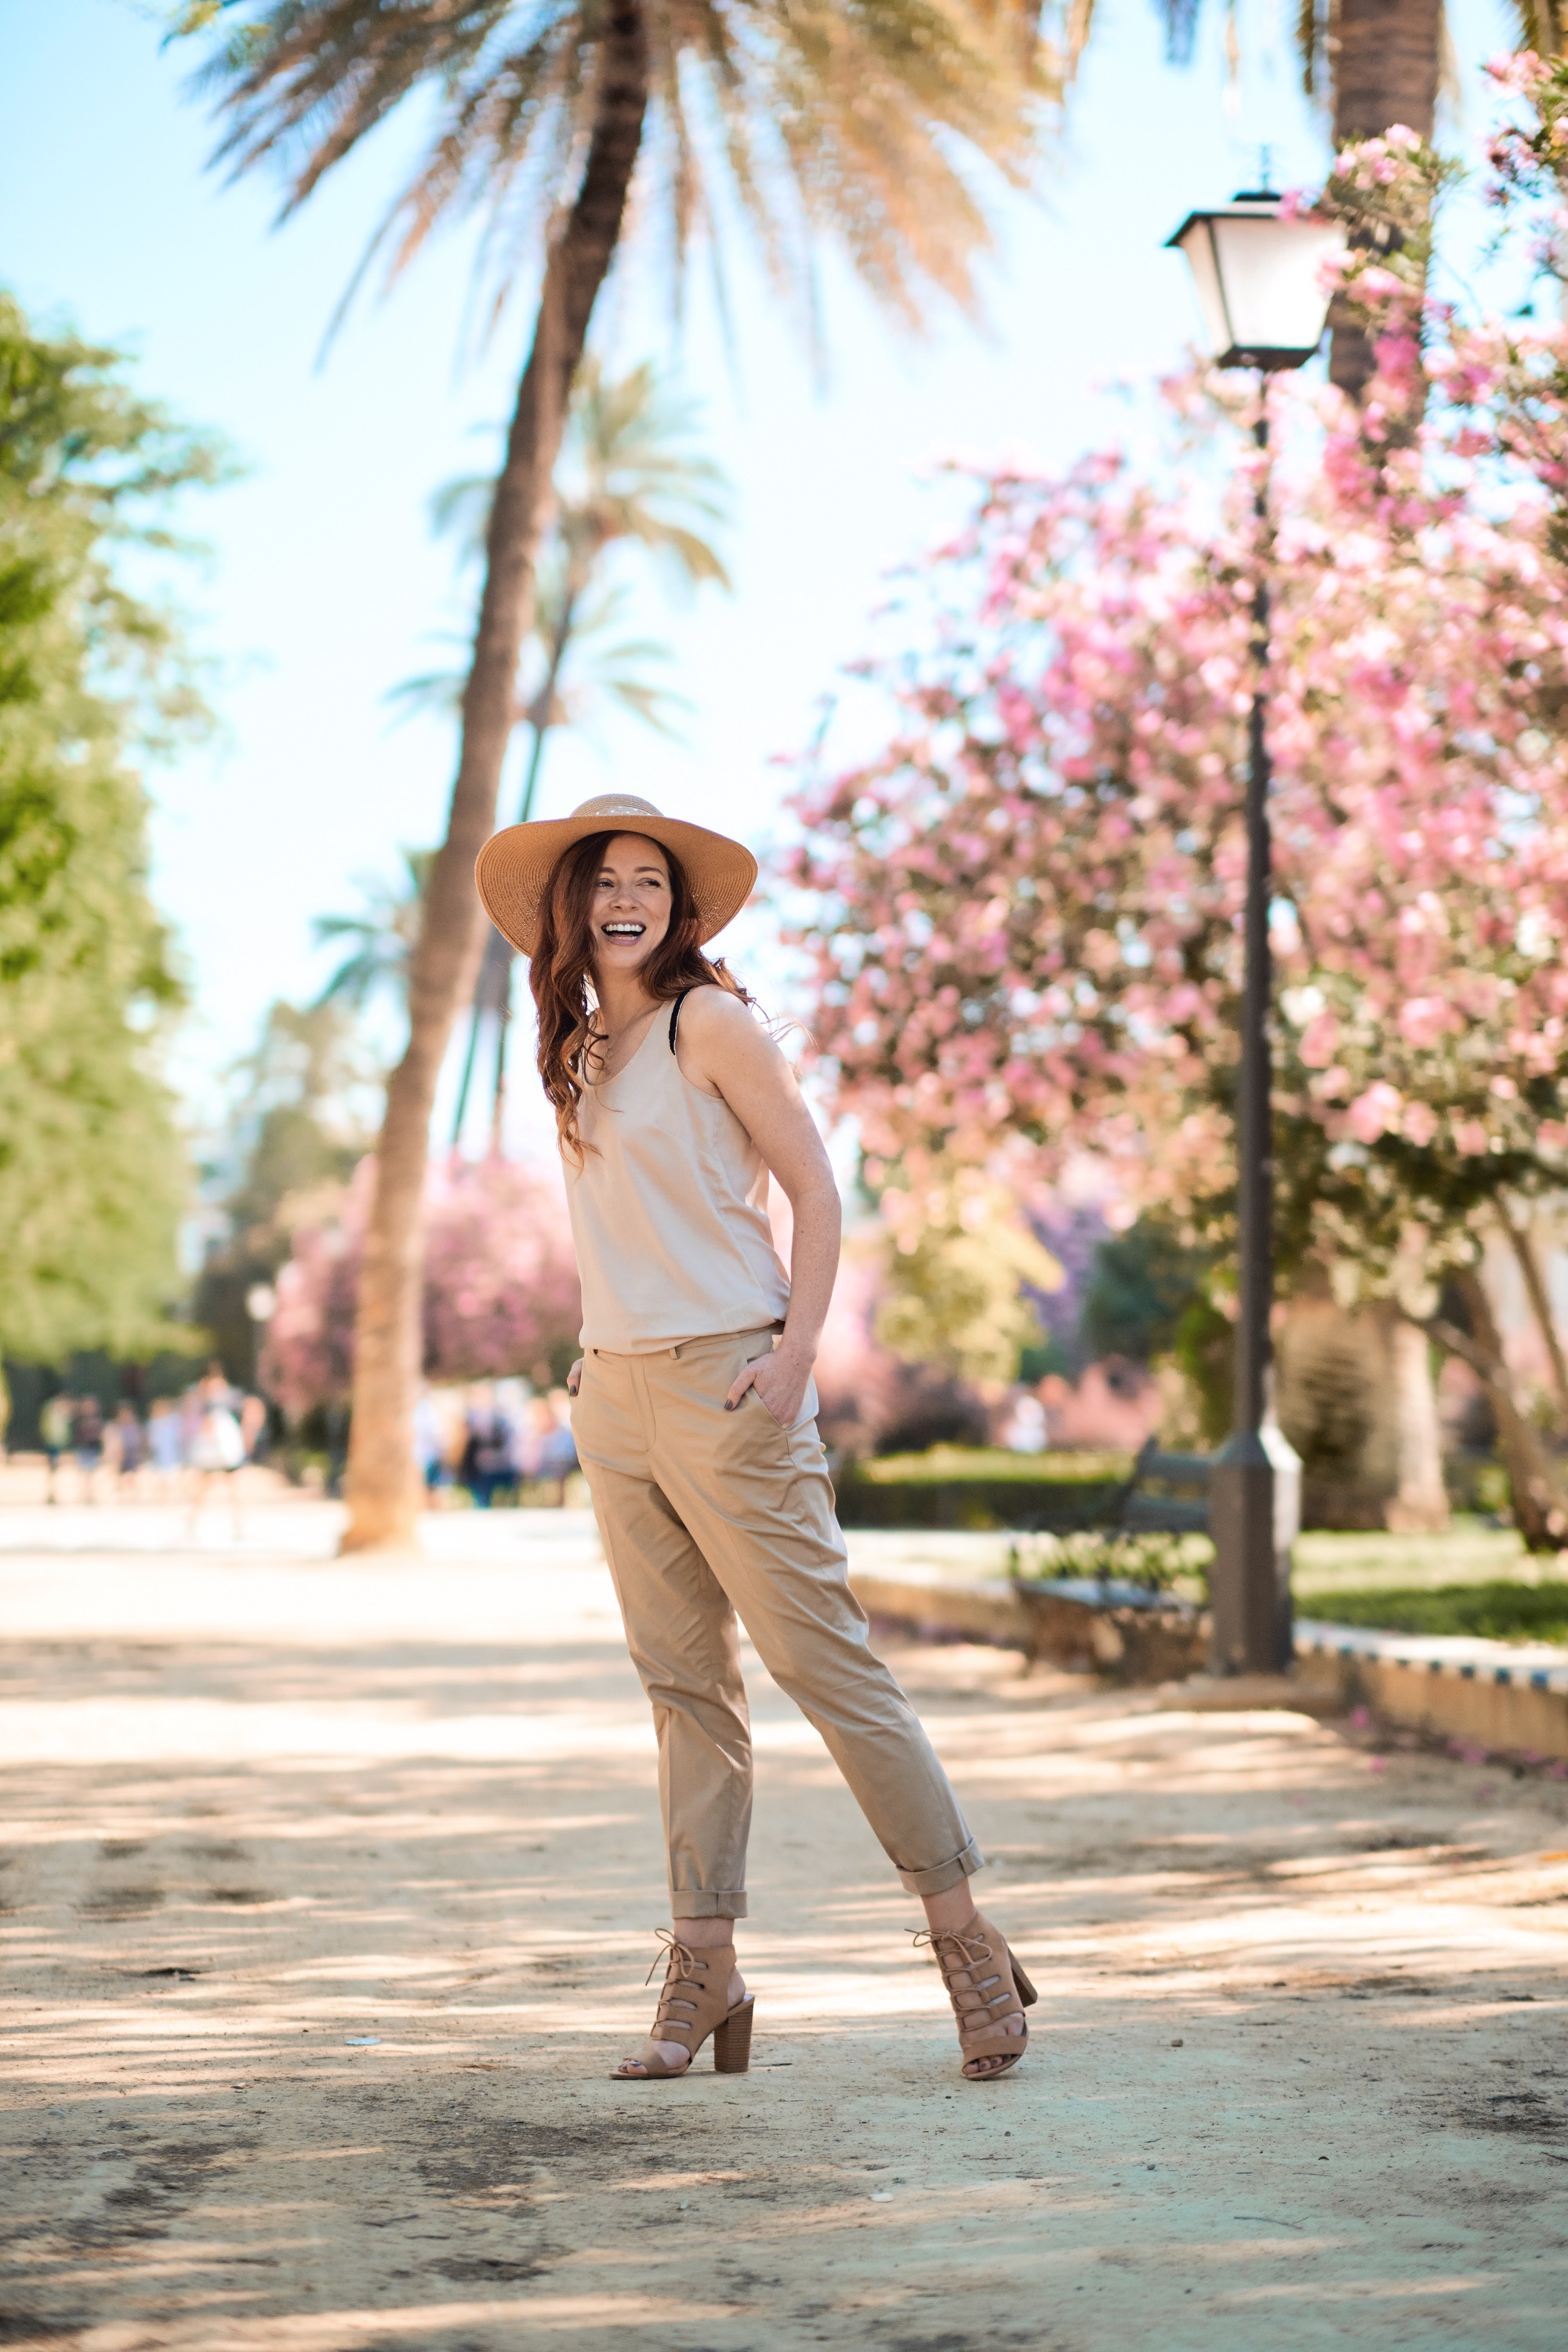 - Sticking to a colour palette is a great way to make a capsule wardrobe for your trip - it means you can mix and match all the pieces without having to worry about clashing colours.Top: HMTrousers: Uniqlo